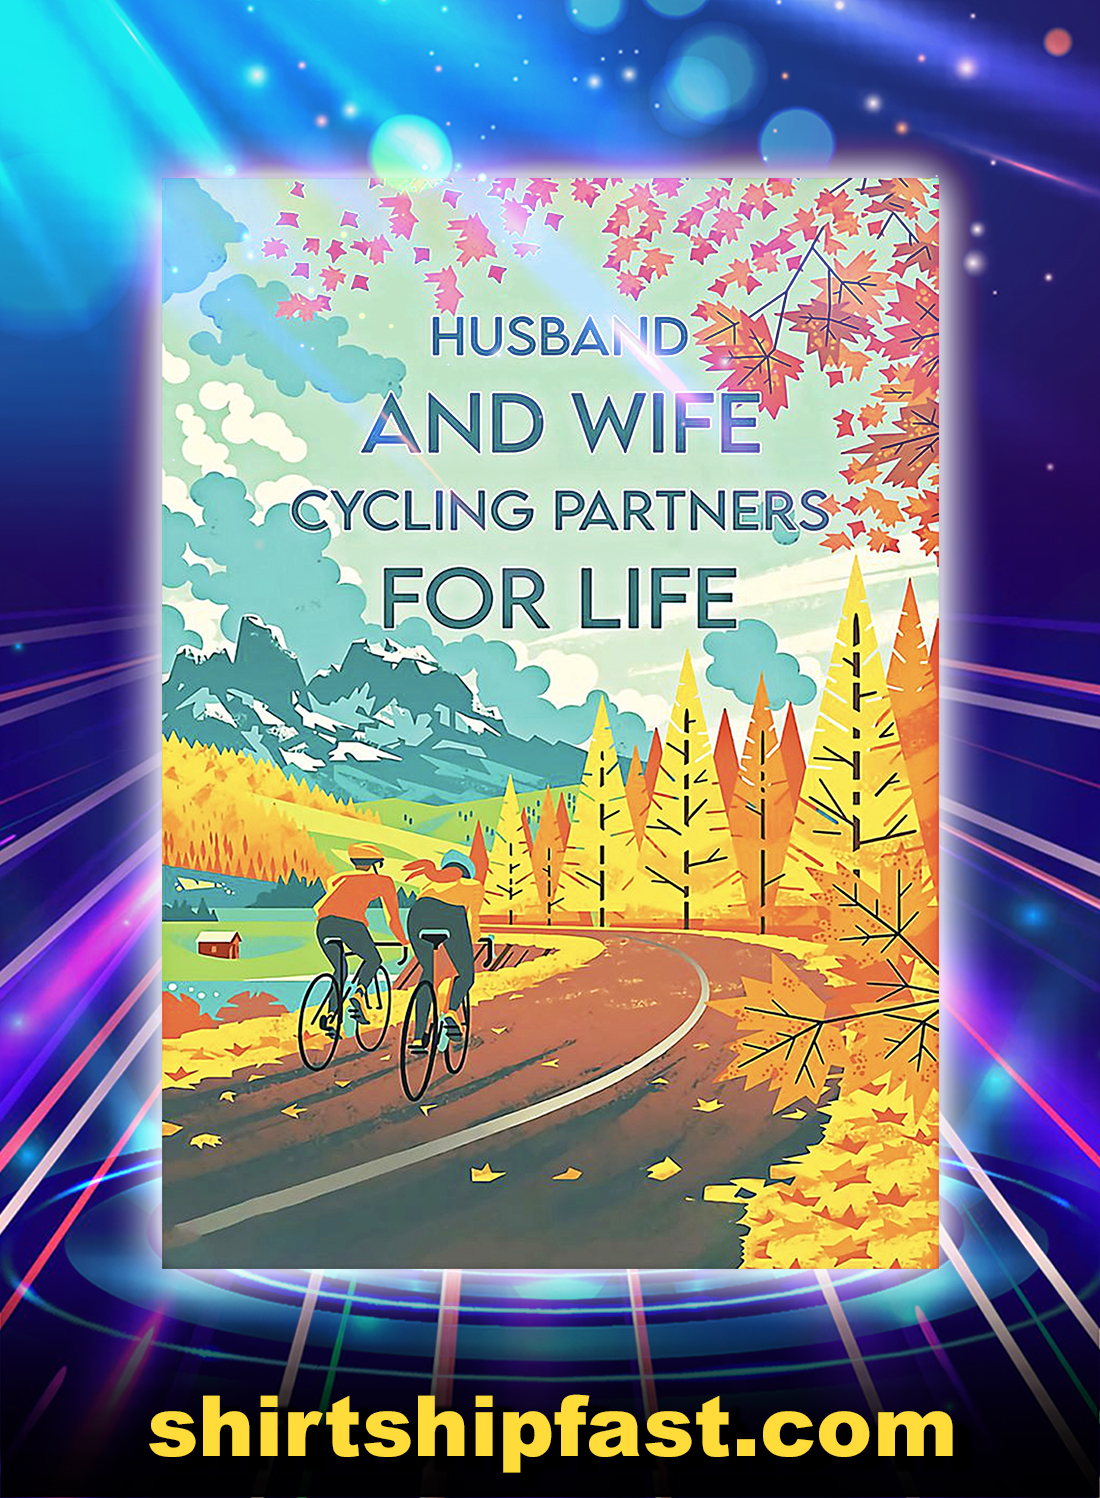 Husband and wife cycling partners for life poster - A4